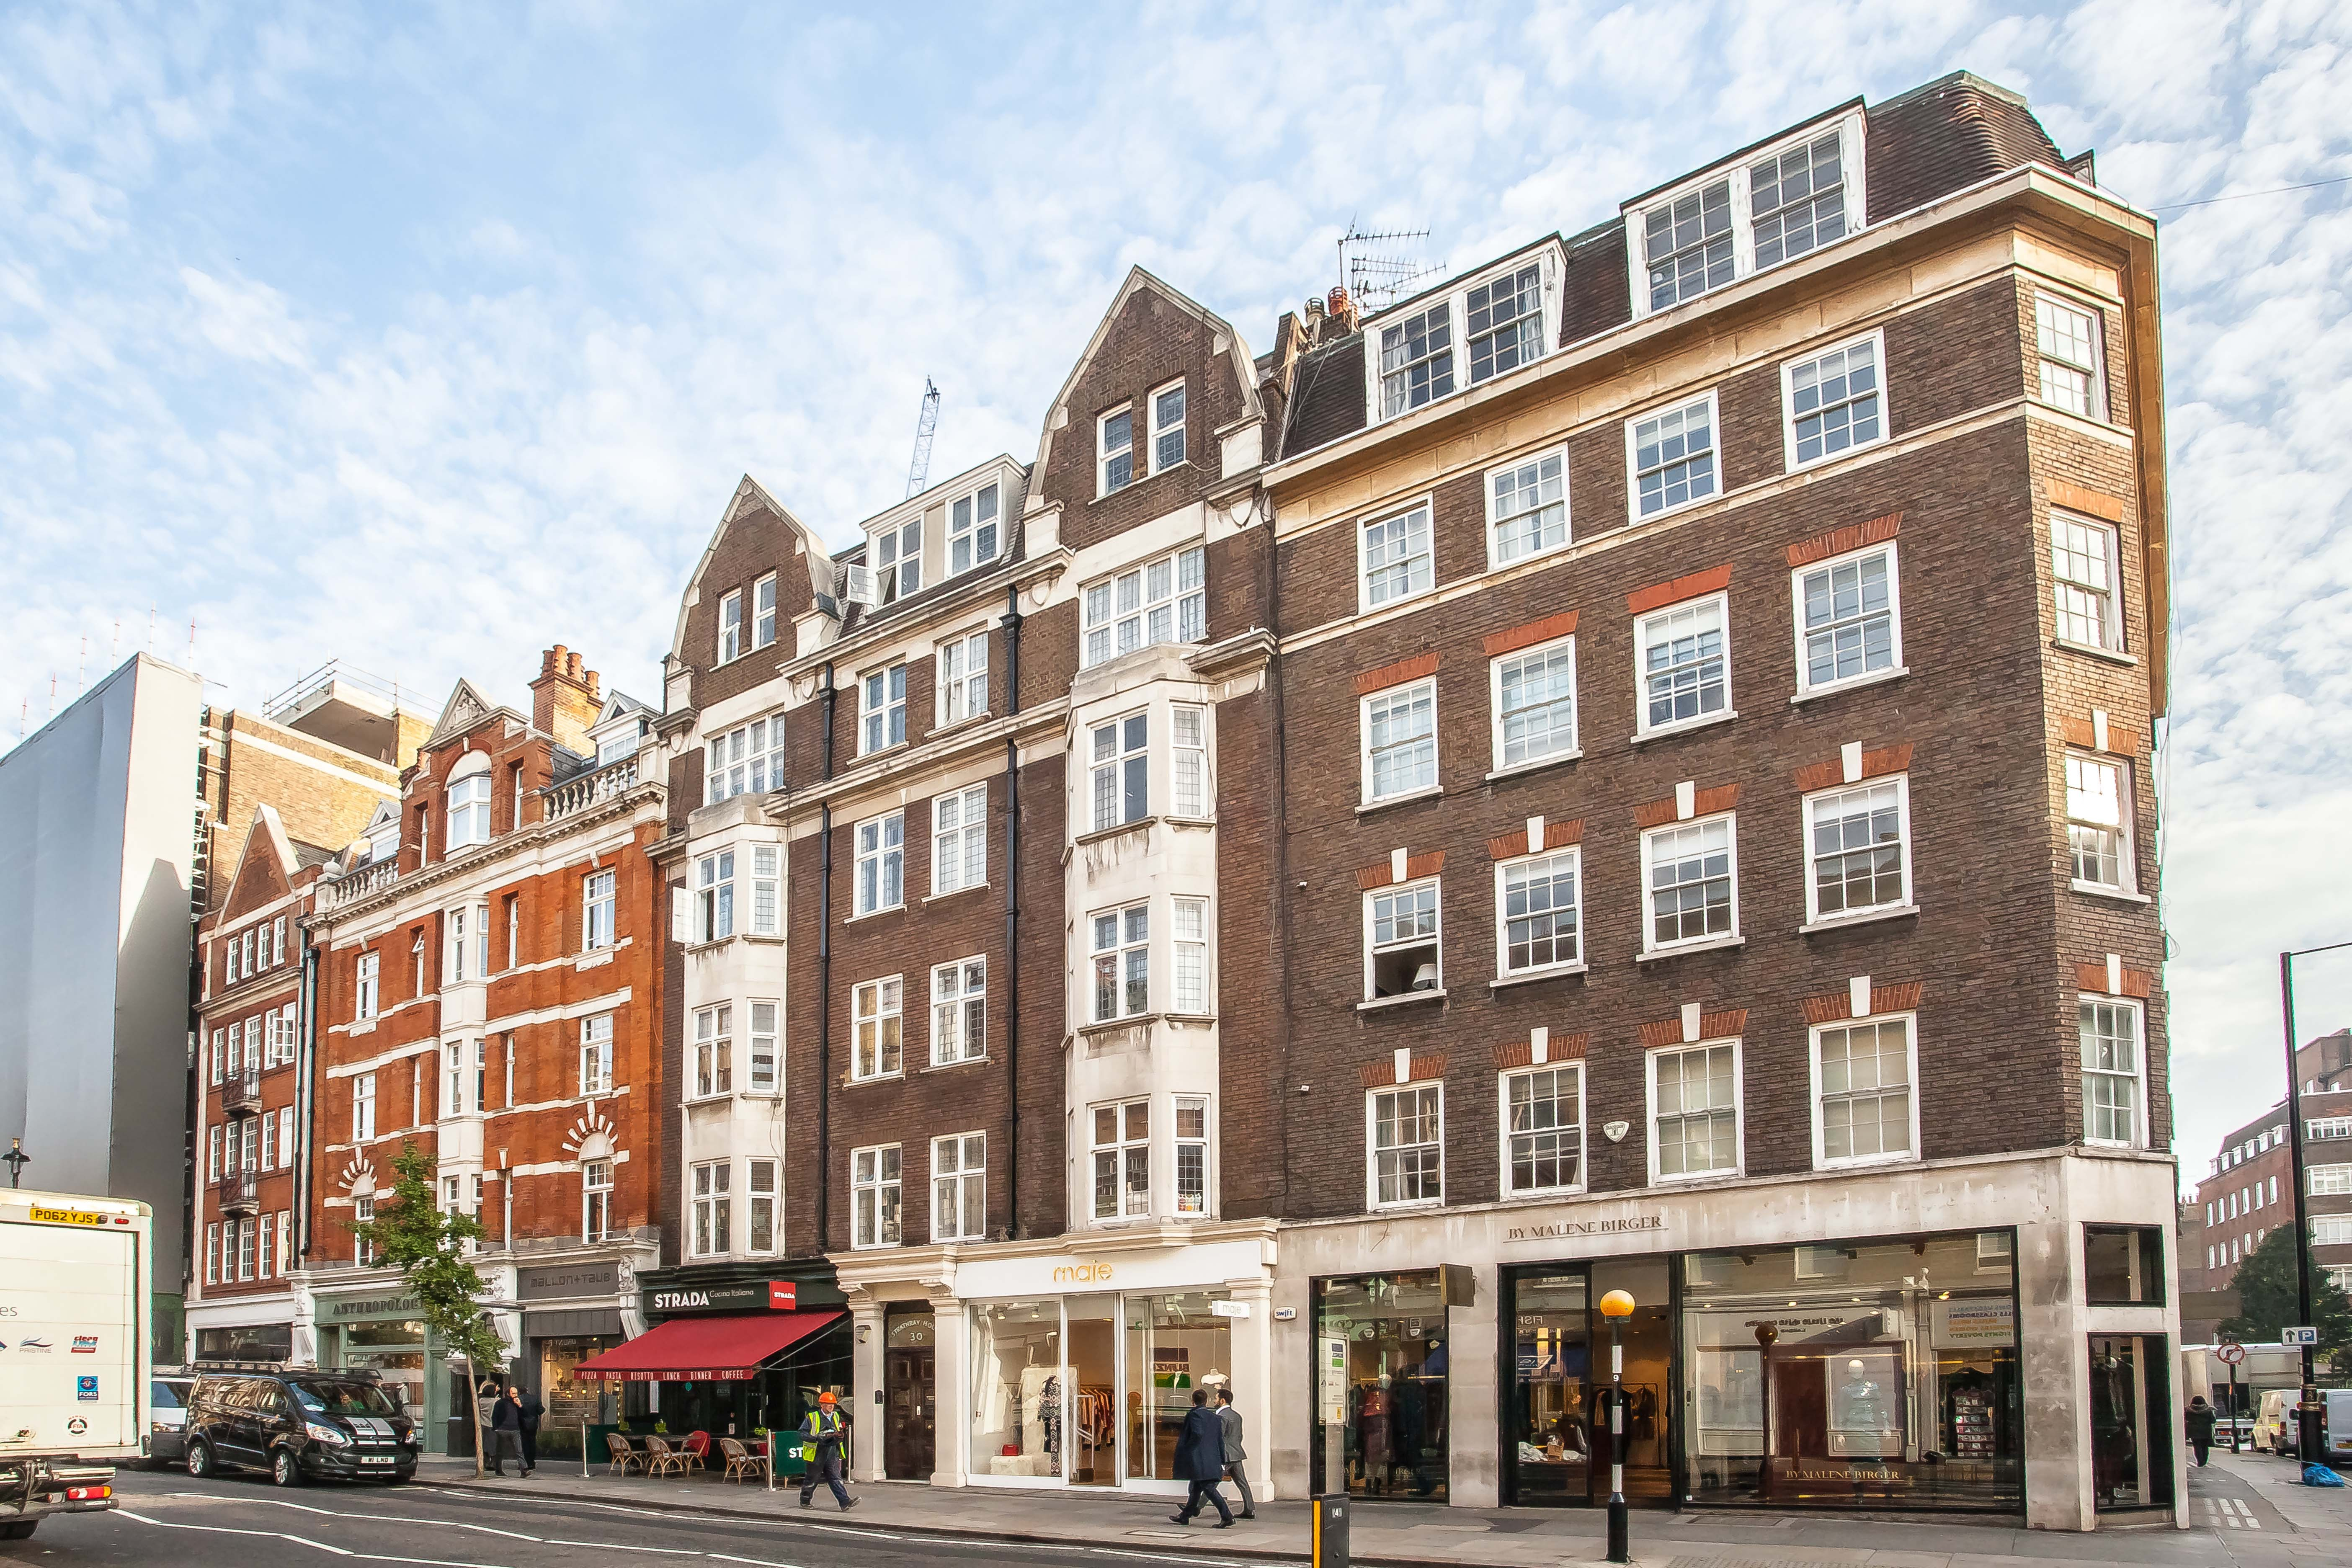 2 Bedroom Flat For Sale In Marylebone High Street W1u London